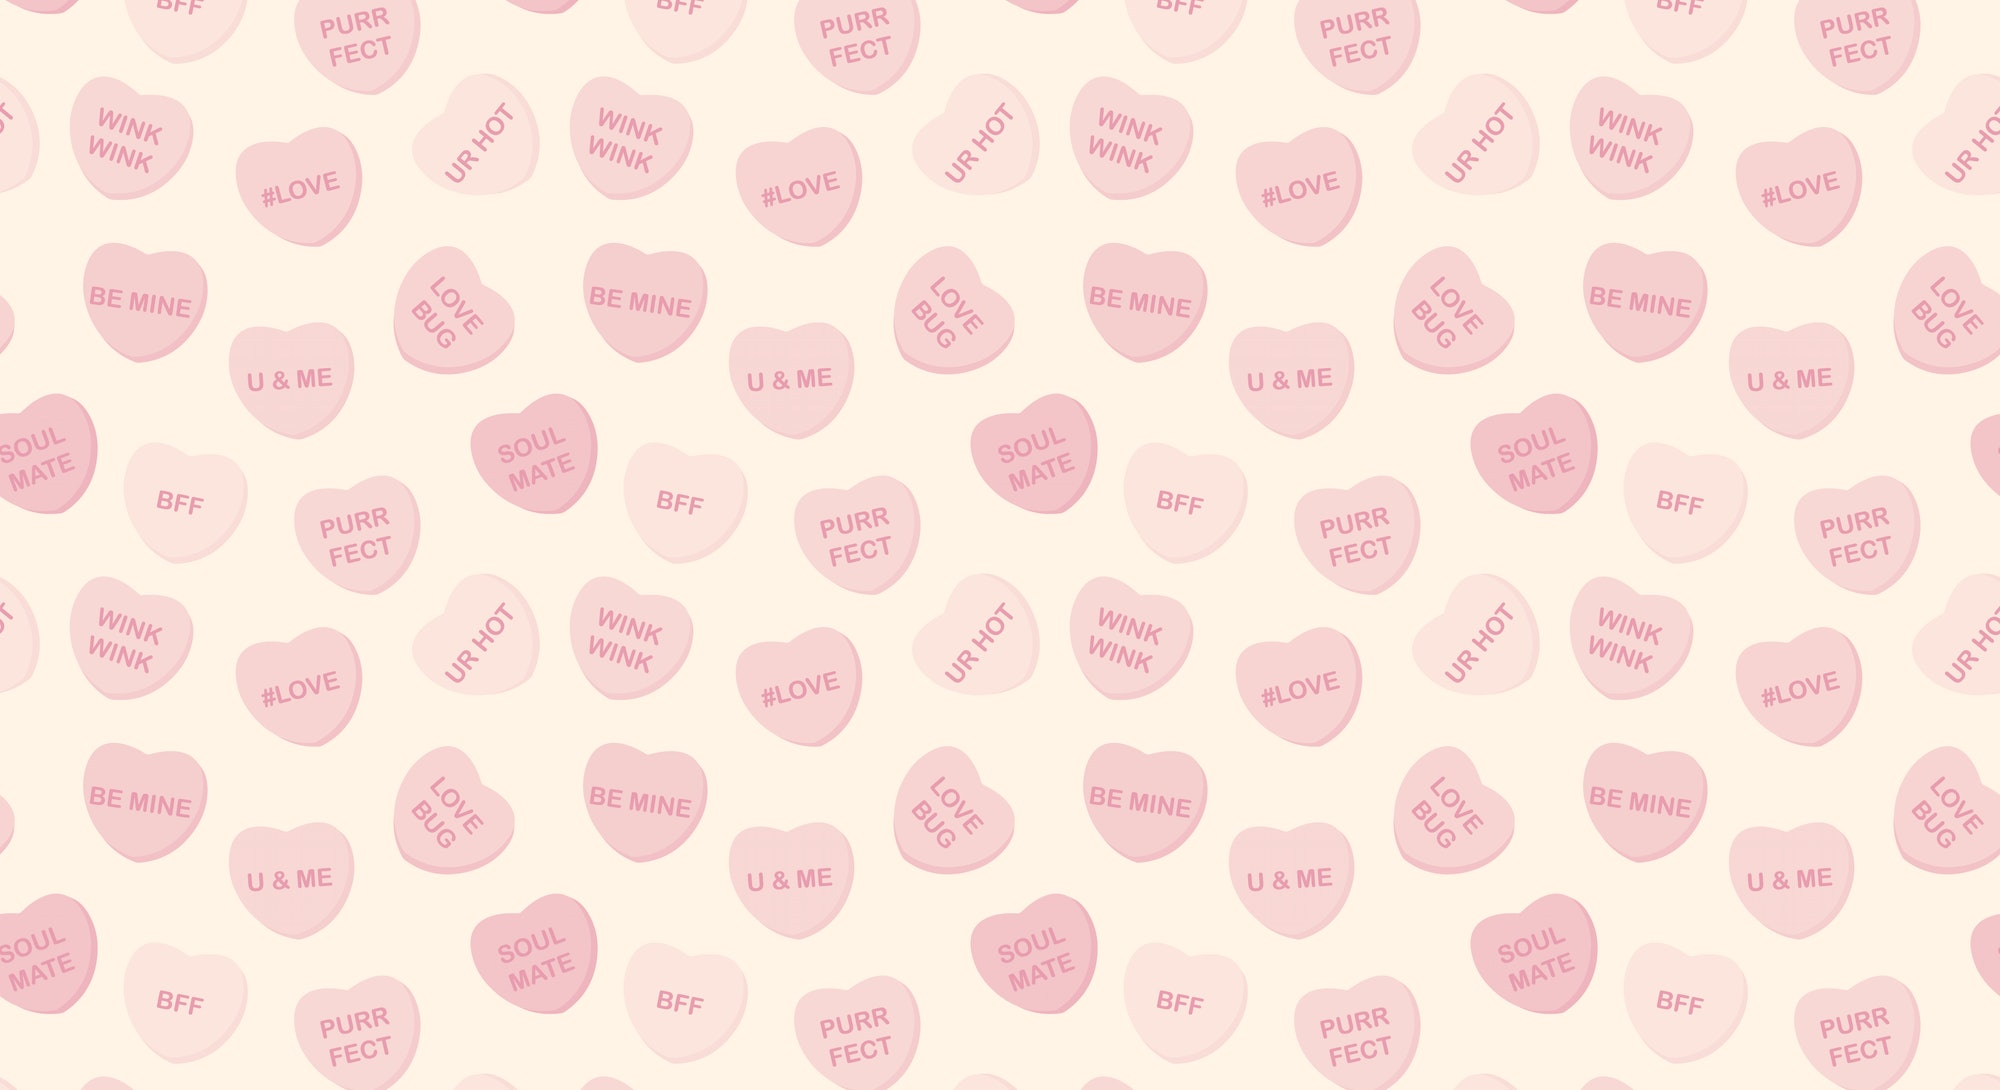 Candy Hearts Seamless Pattern - Pastel rainbow conversation heart candy design for Valentine's Day